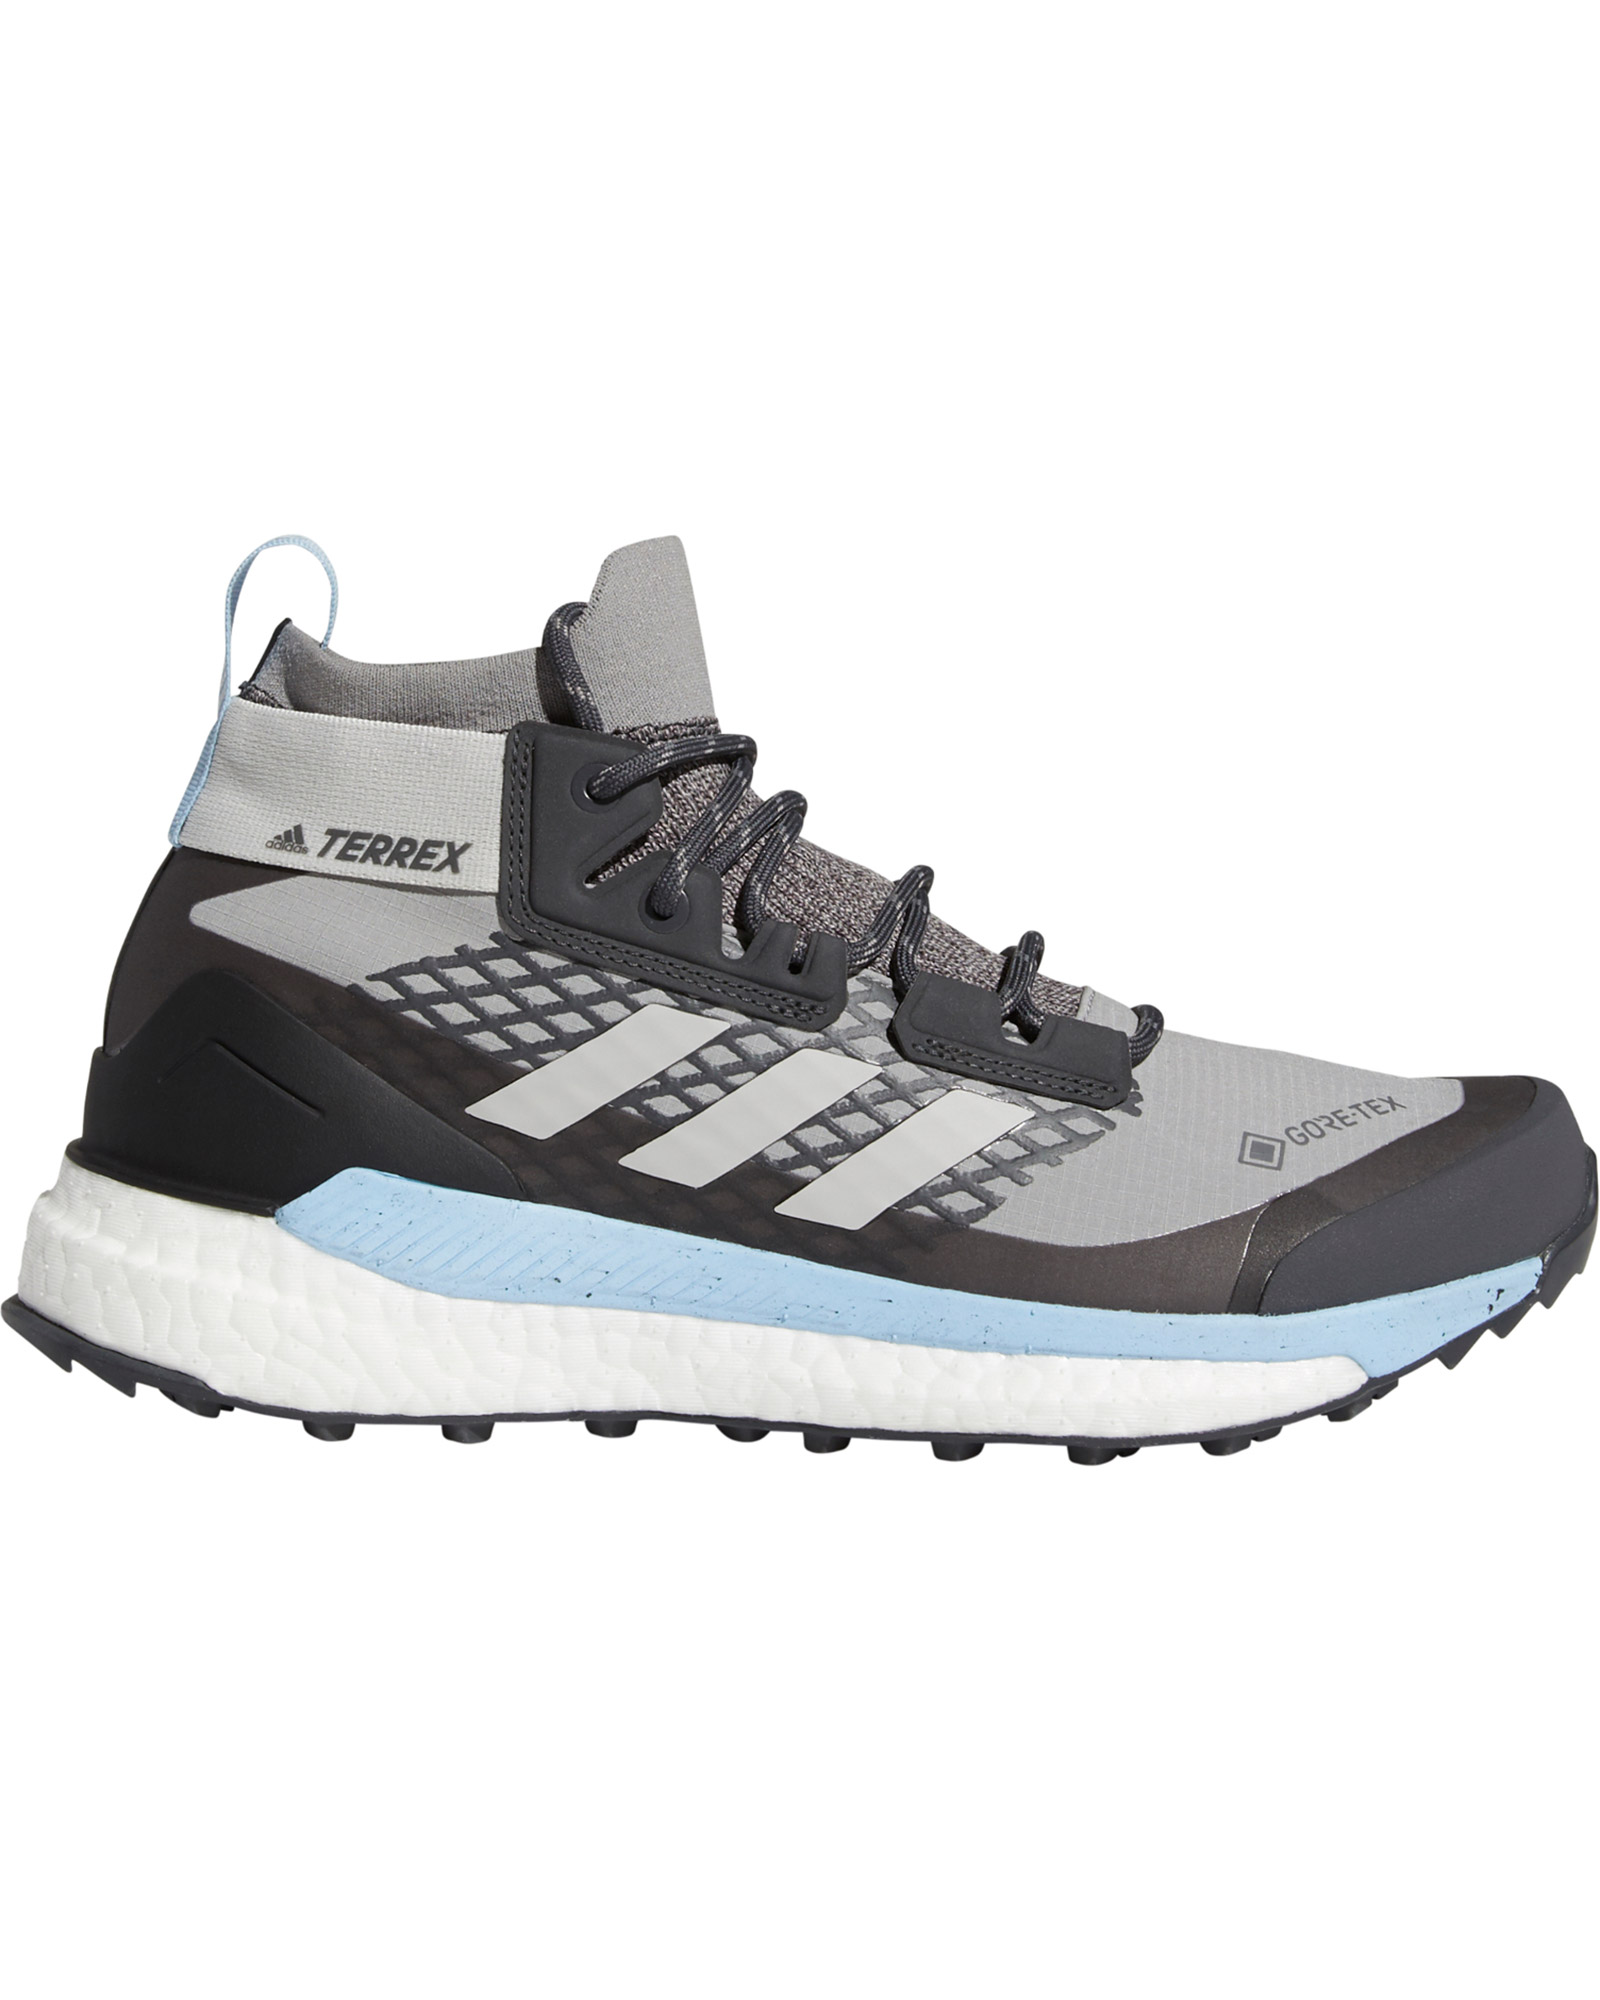 Adidas Terrex Women's Free Hiker GORE-TEX Shoes 0